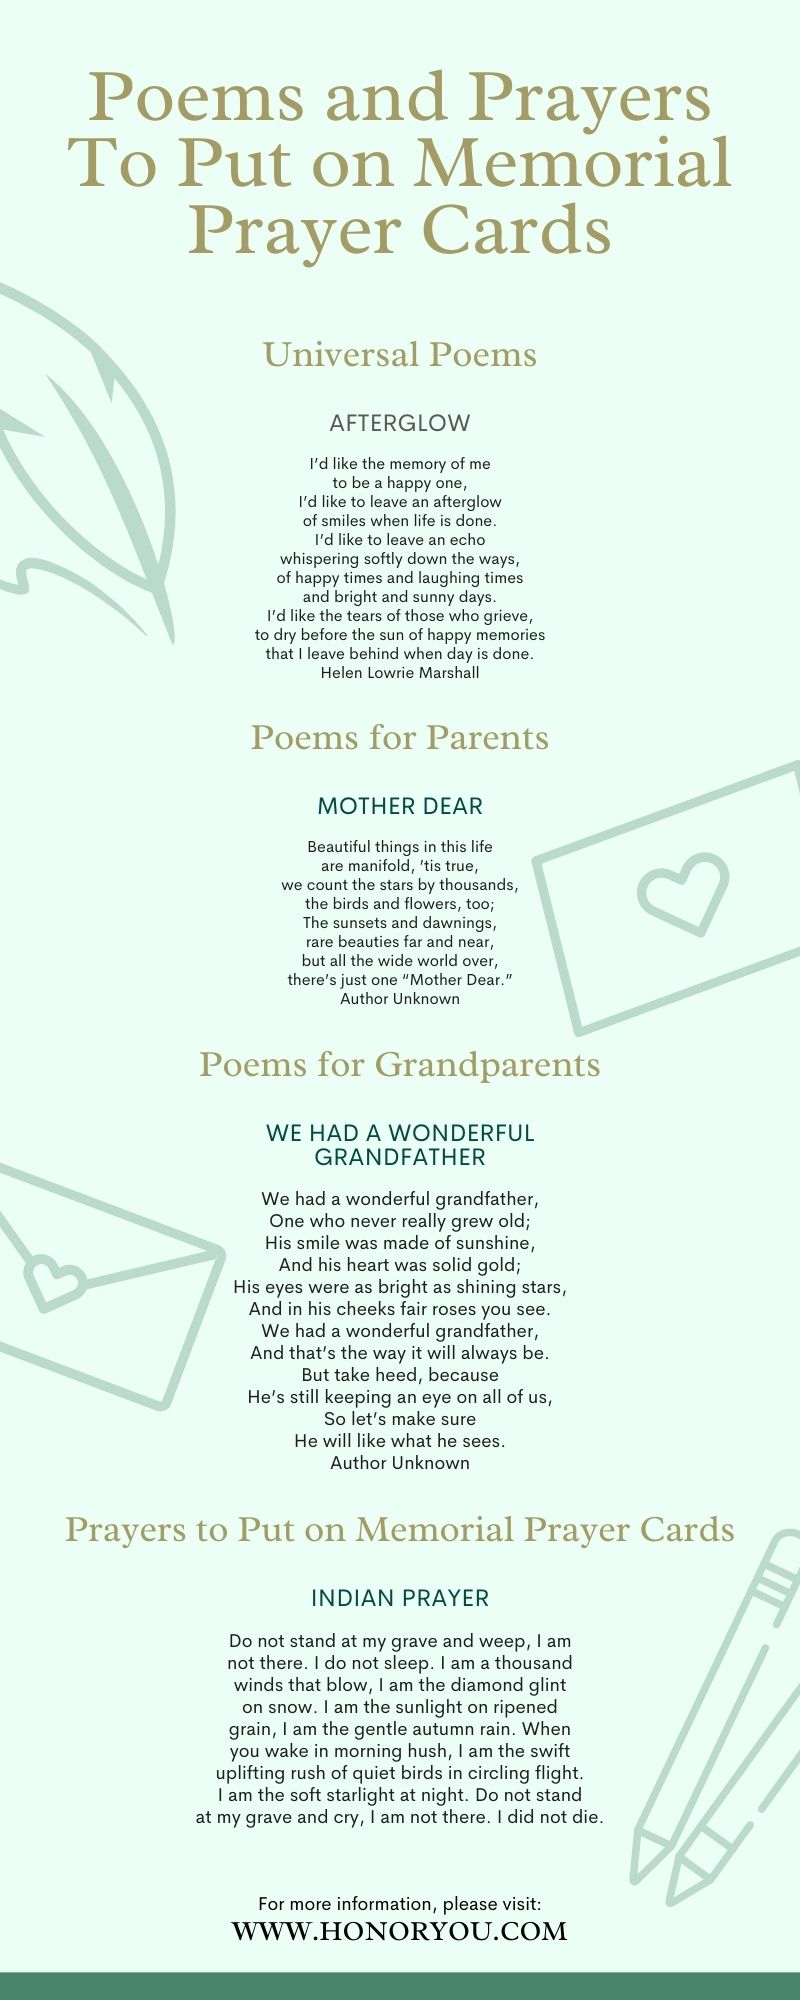 Poems and Prayers To Put on Memorial Prayer Cards